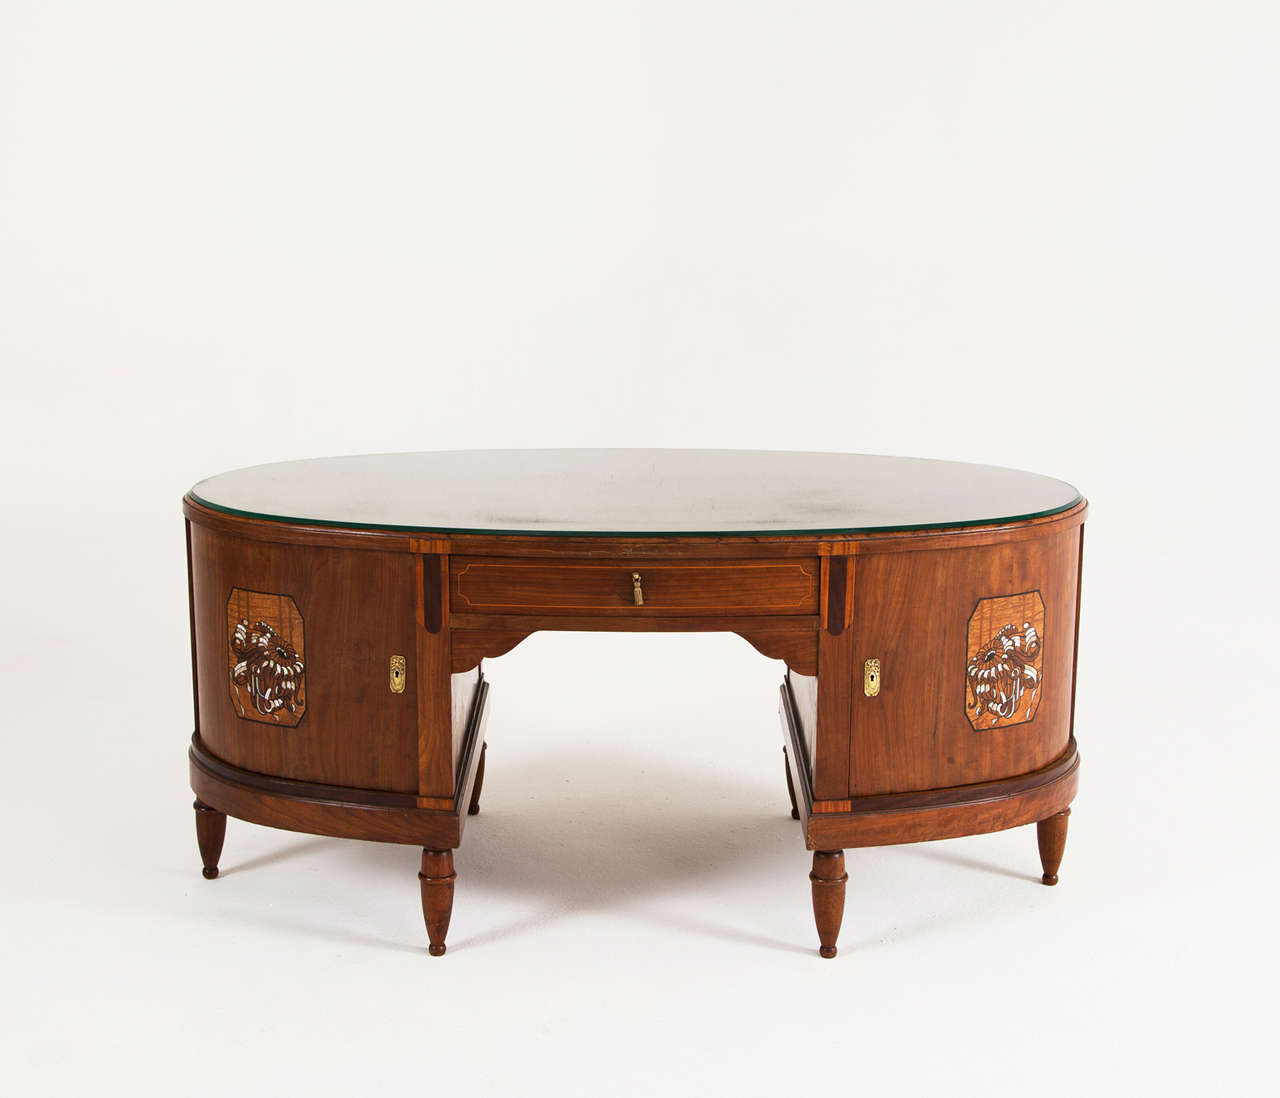 Two Sided Art Deco Executive Desk at 1stdibs